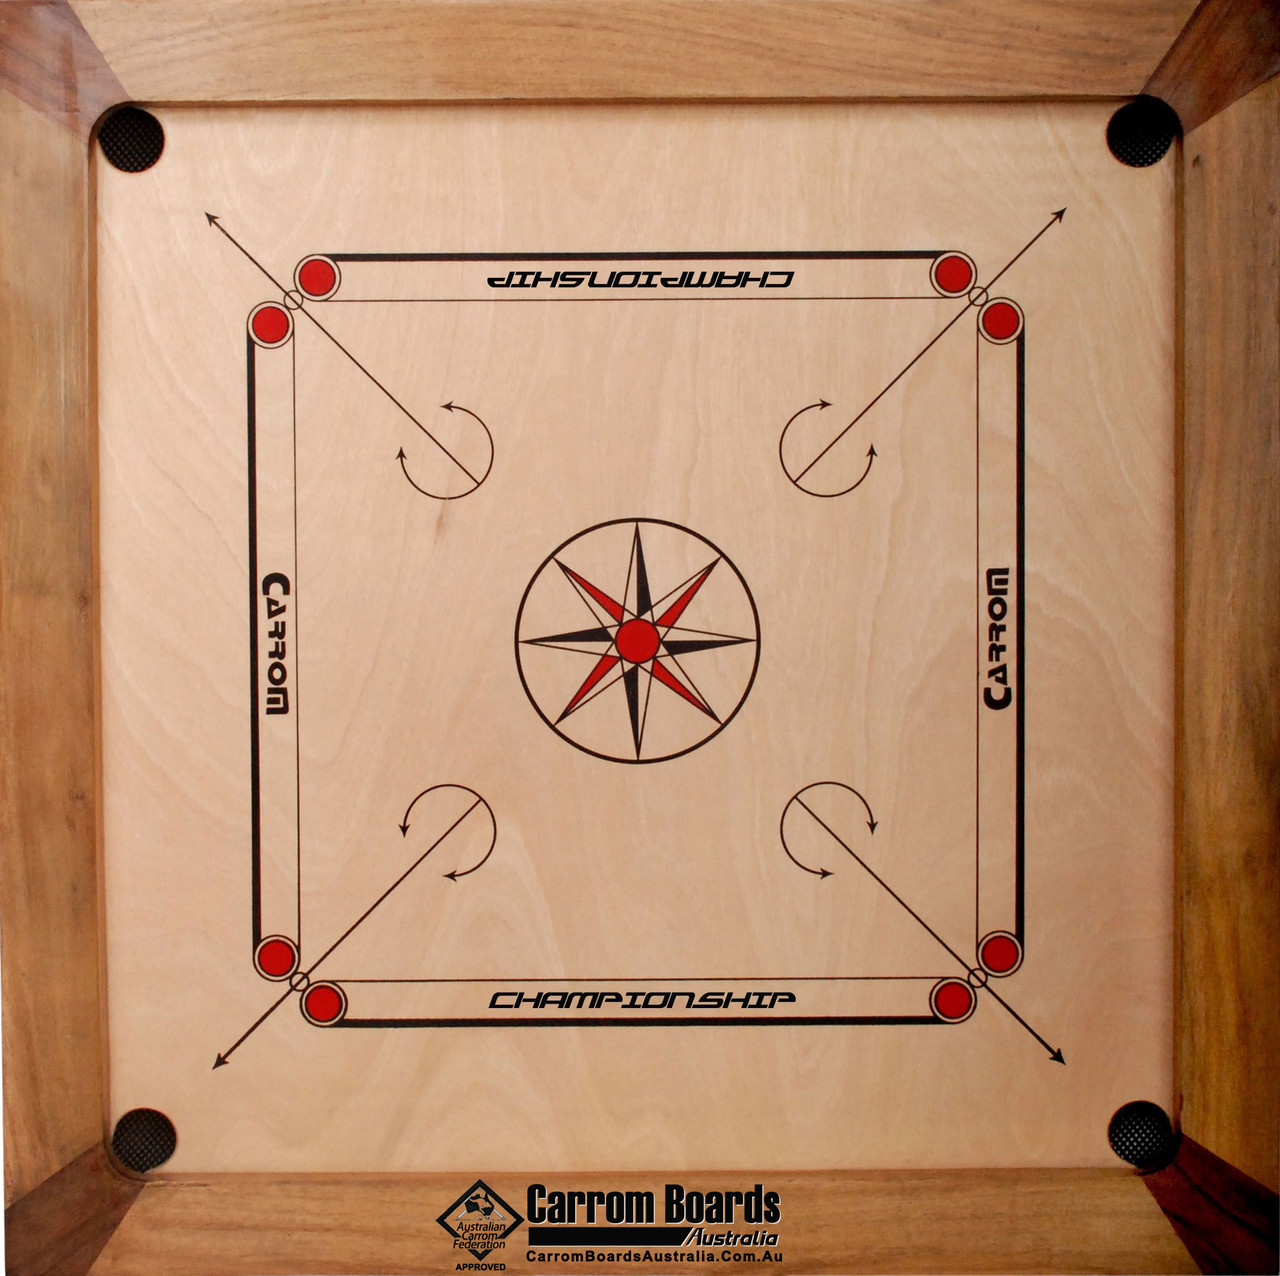 Carrom Board 89cmx89cm CHAMPIONSHIP NATURAL & REGULATION STAND PLUS FREE PACKAGE OFFERS